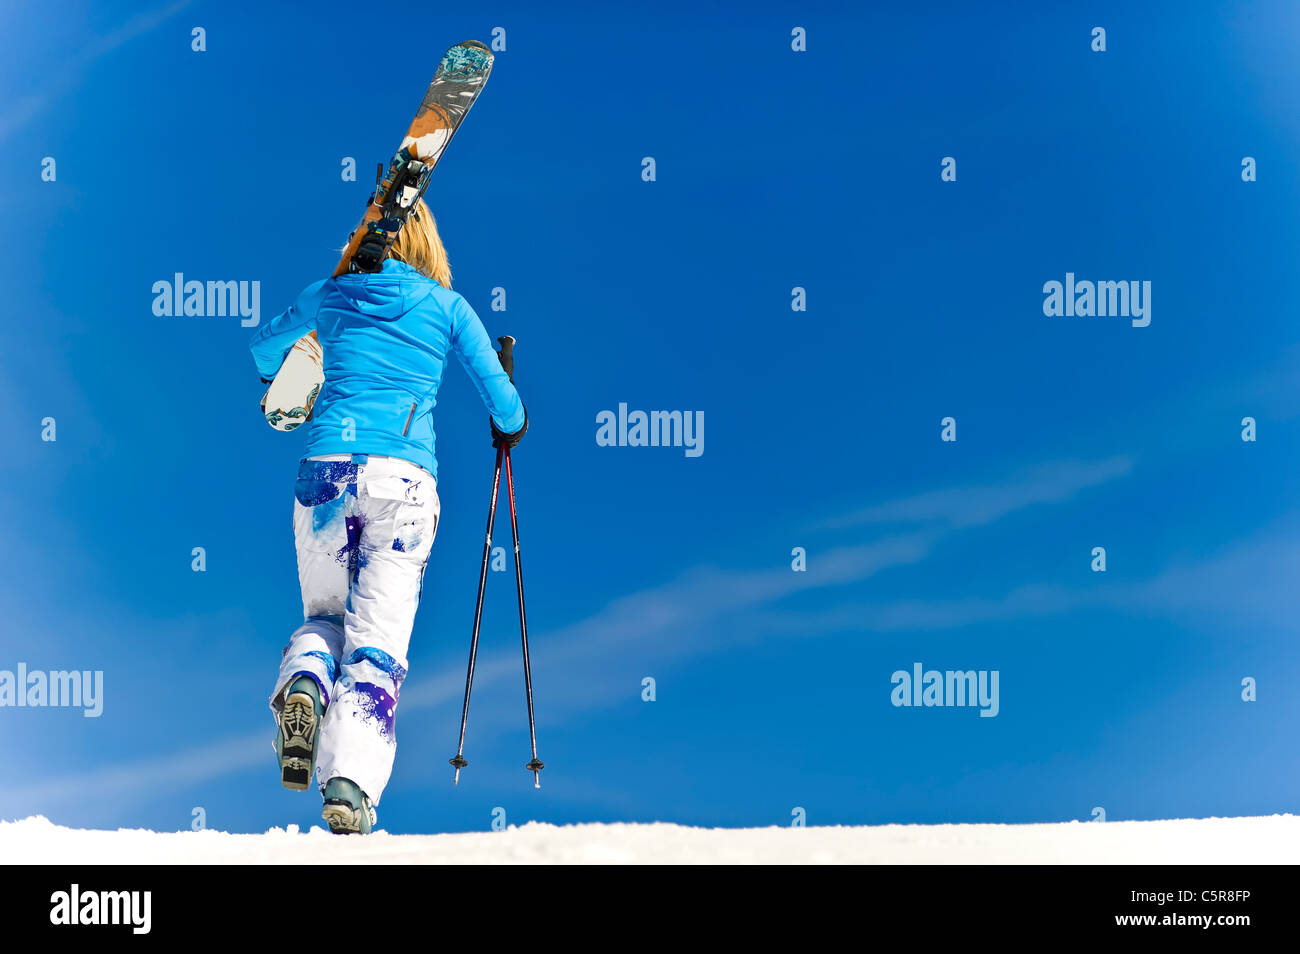 A female skier on the piste. - Stock Image